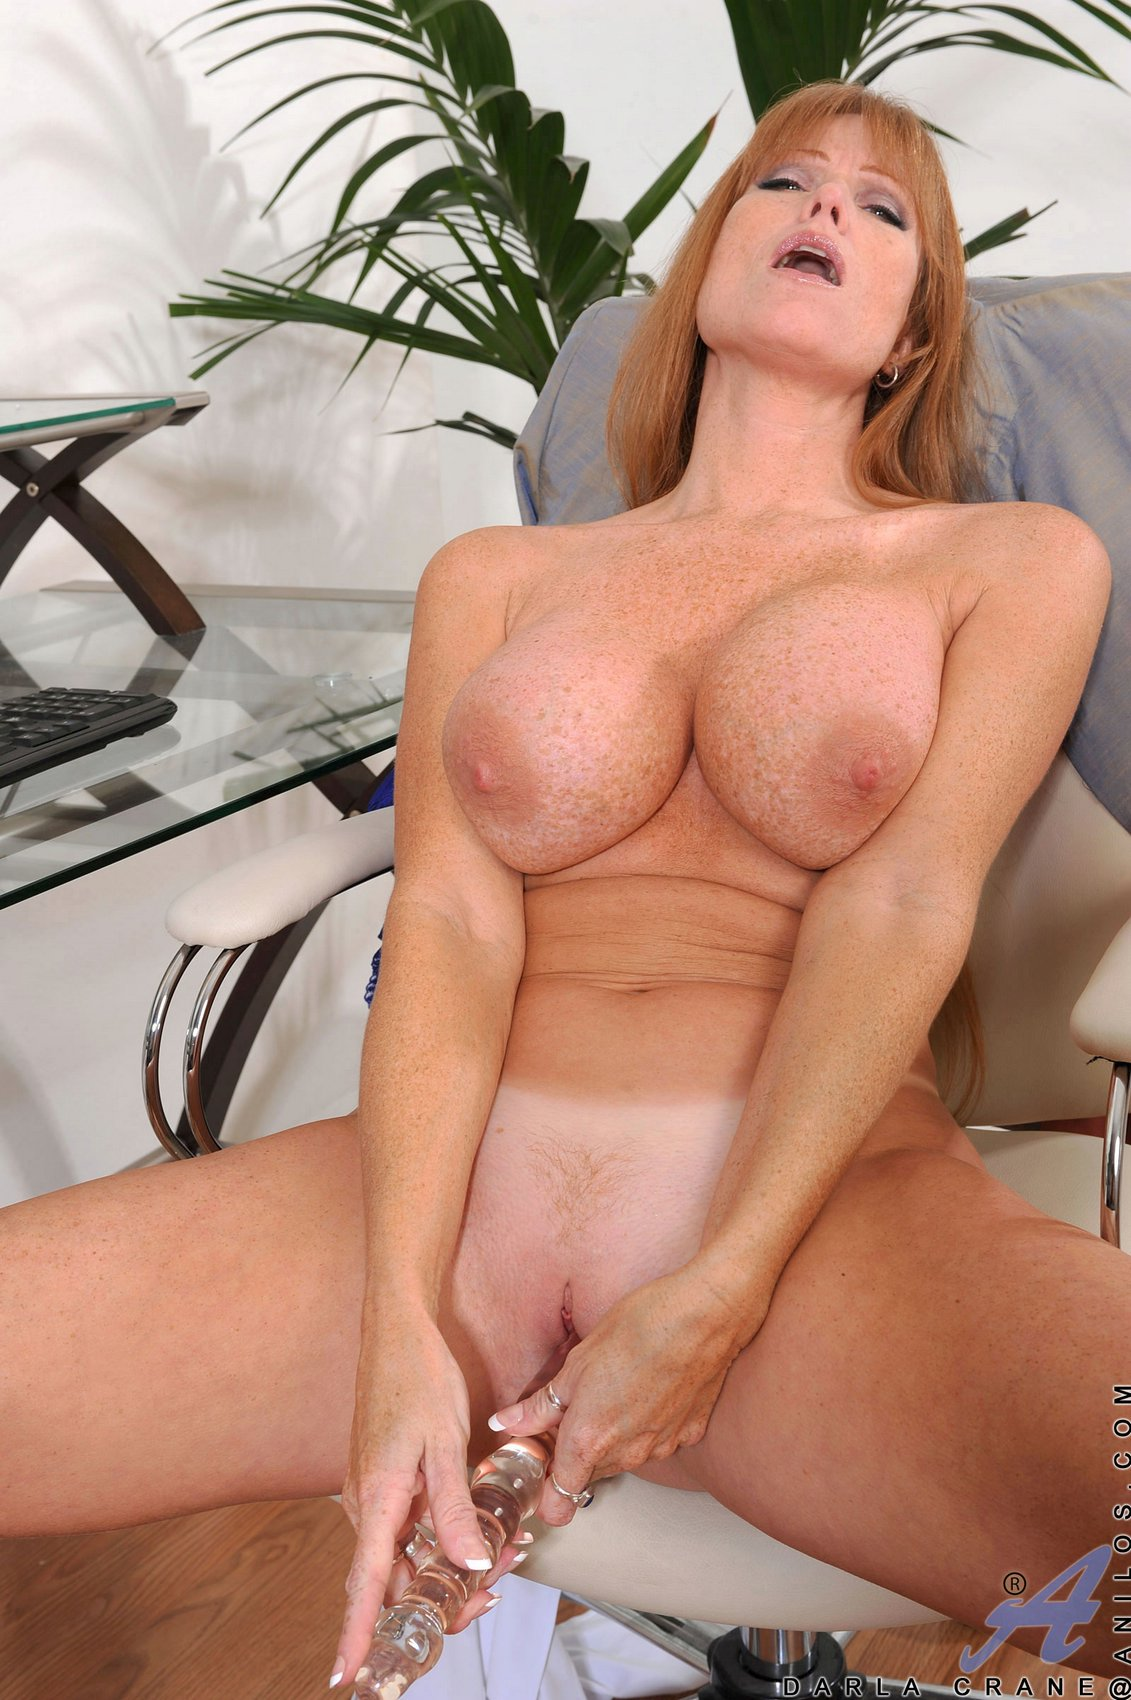 Busty mature lady Darla Crane fucking her pussy with glass dildo ...